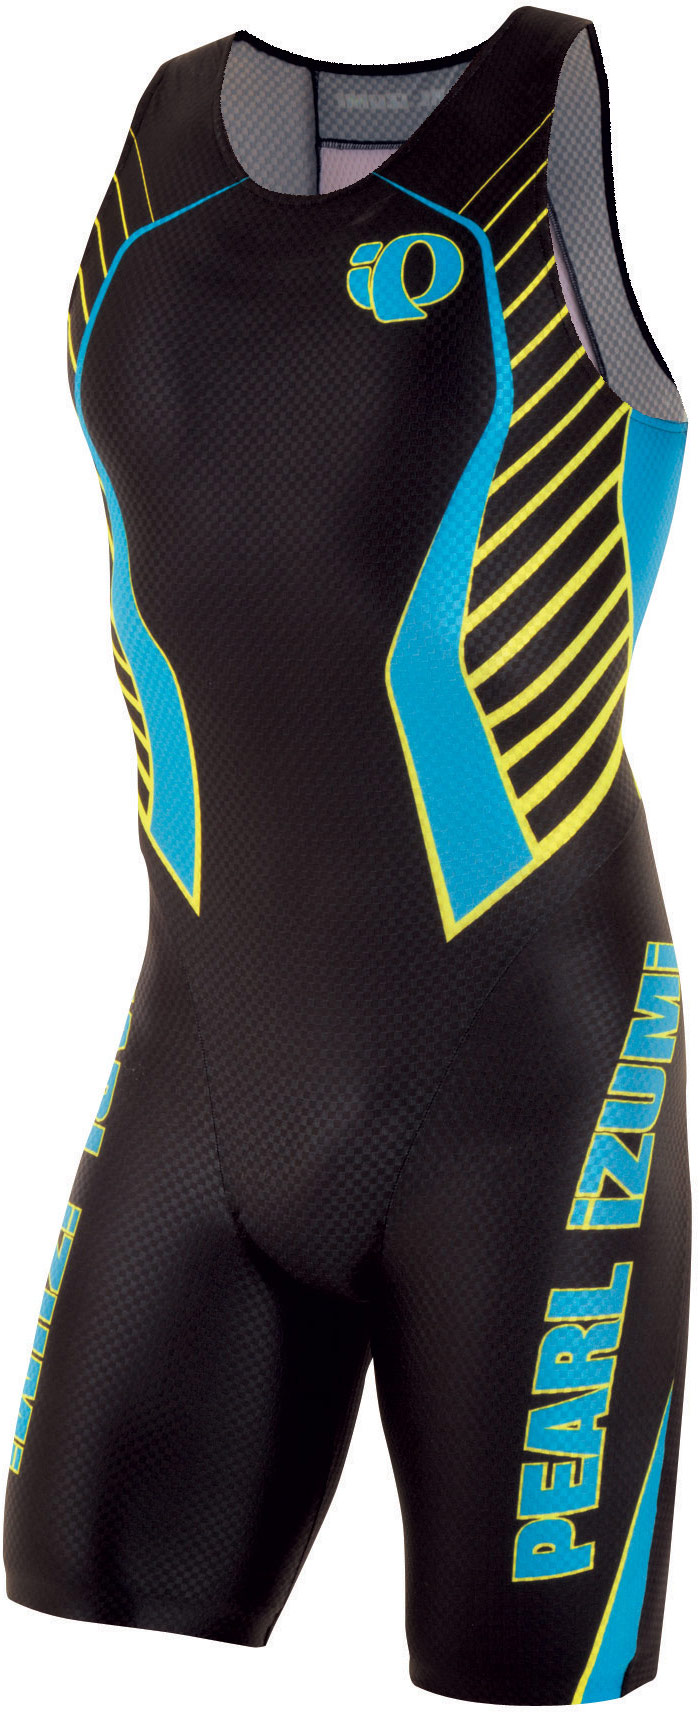 P R O  In-R-Cool Tri Suit